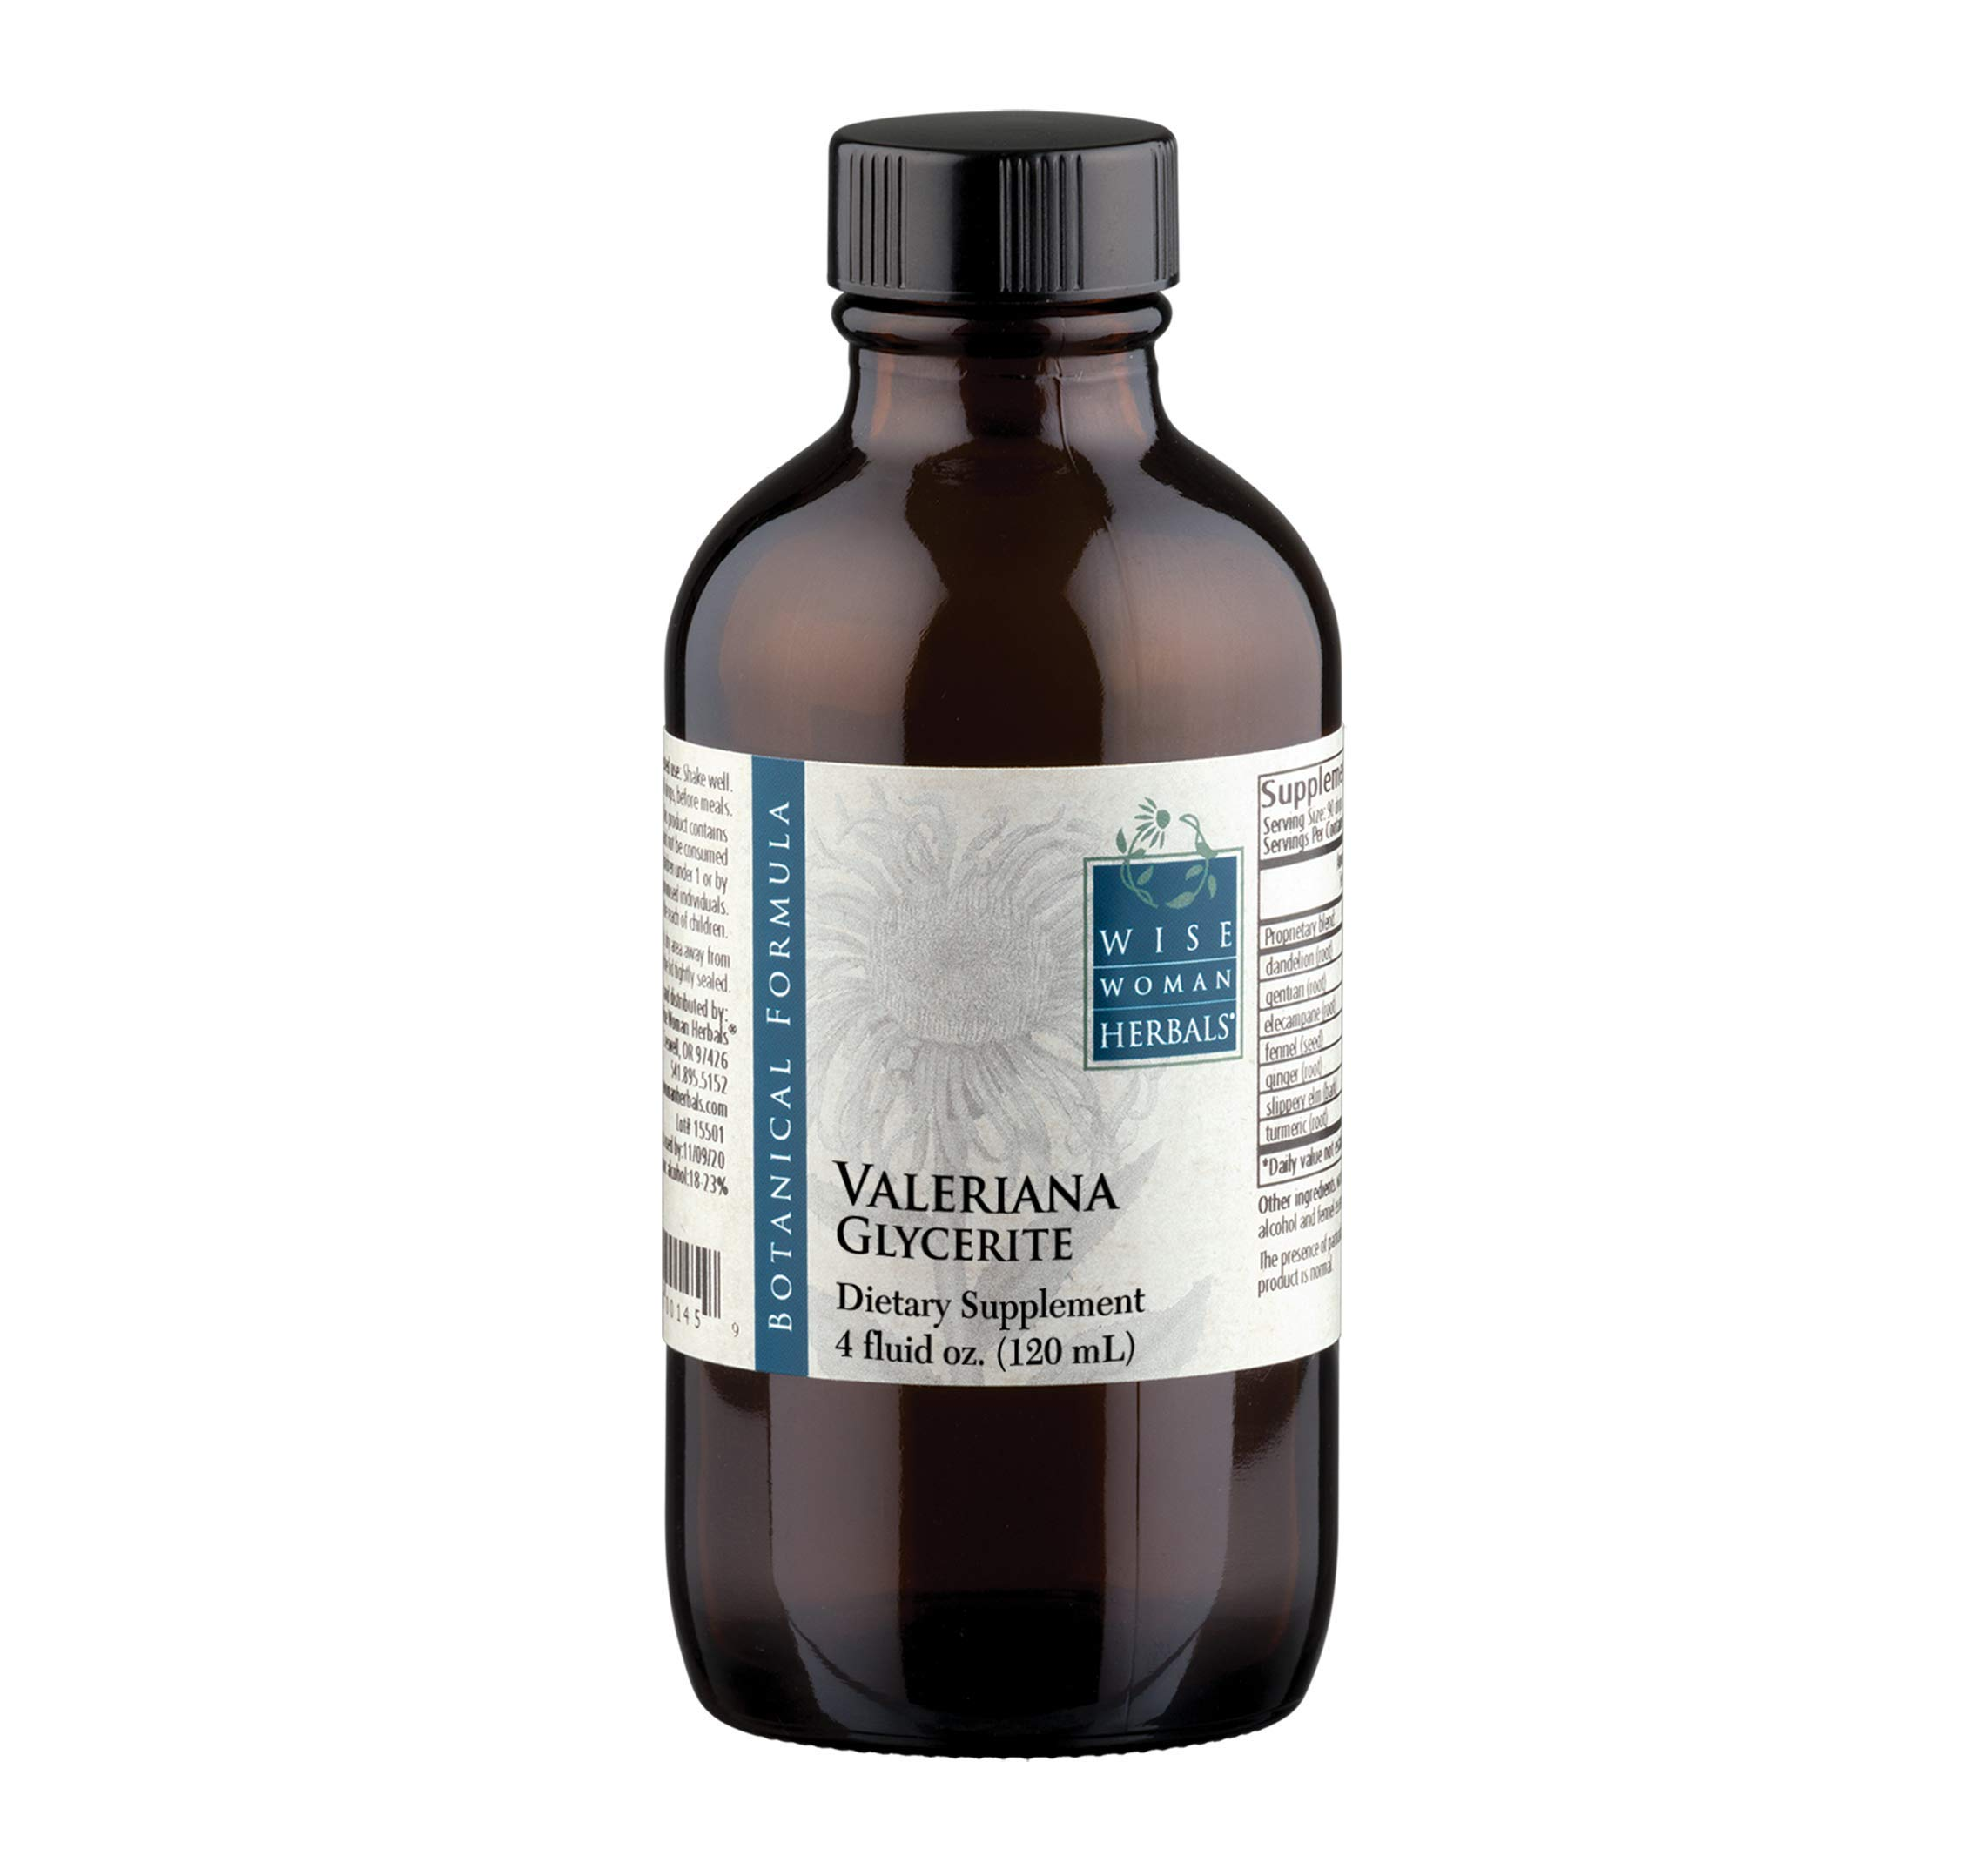 Wise Woman Herbal - Valeriana Glycerite - 4 fl oz Valerian Root Herb, All-Natural Sleep Aid Supports a Healthy Restful Sleep, Calm and Relaxation, Natural Relaxant Ease Mild Muscle Tension